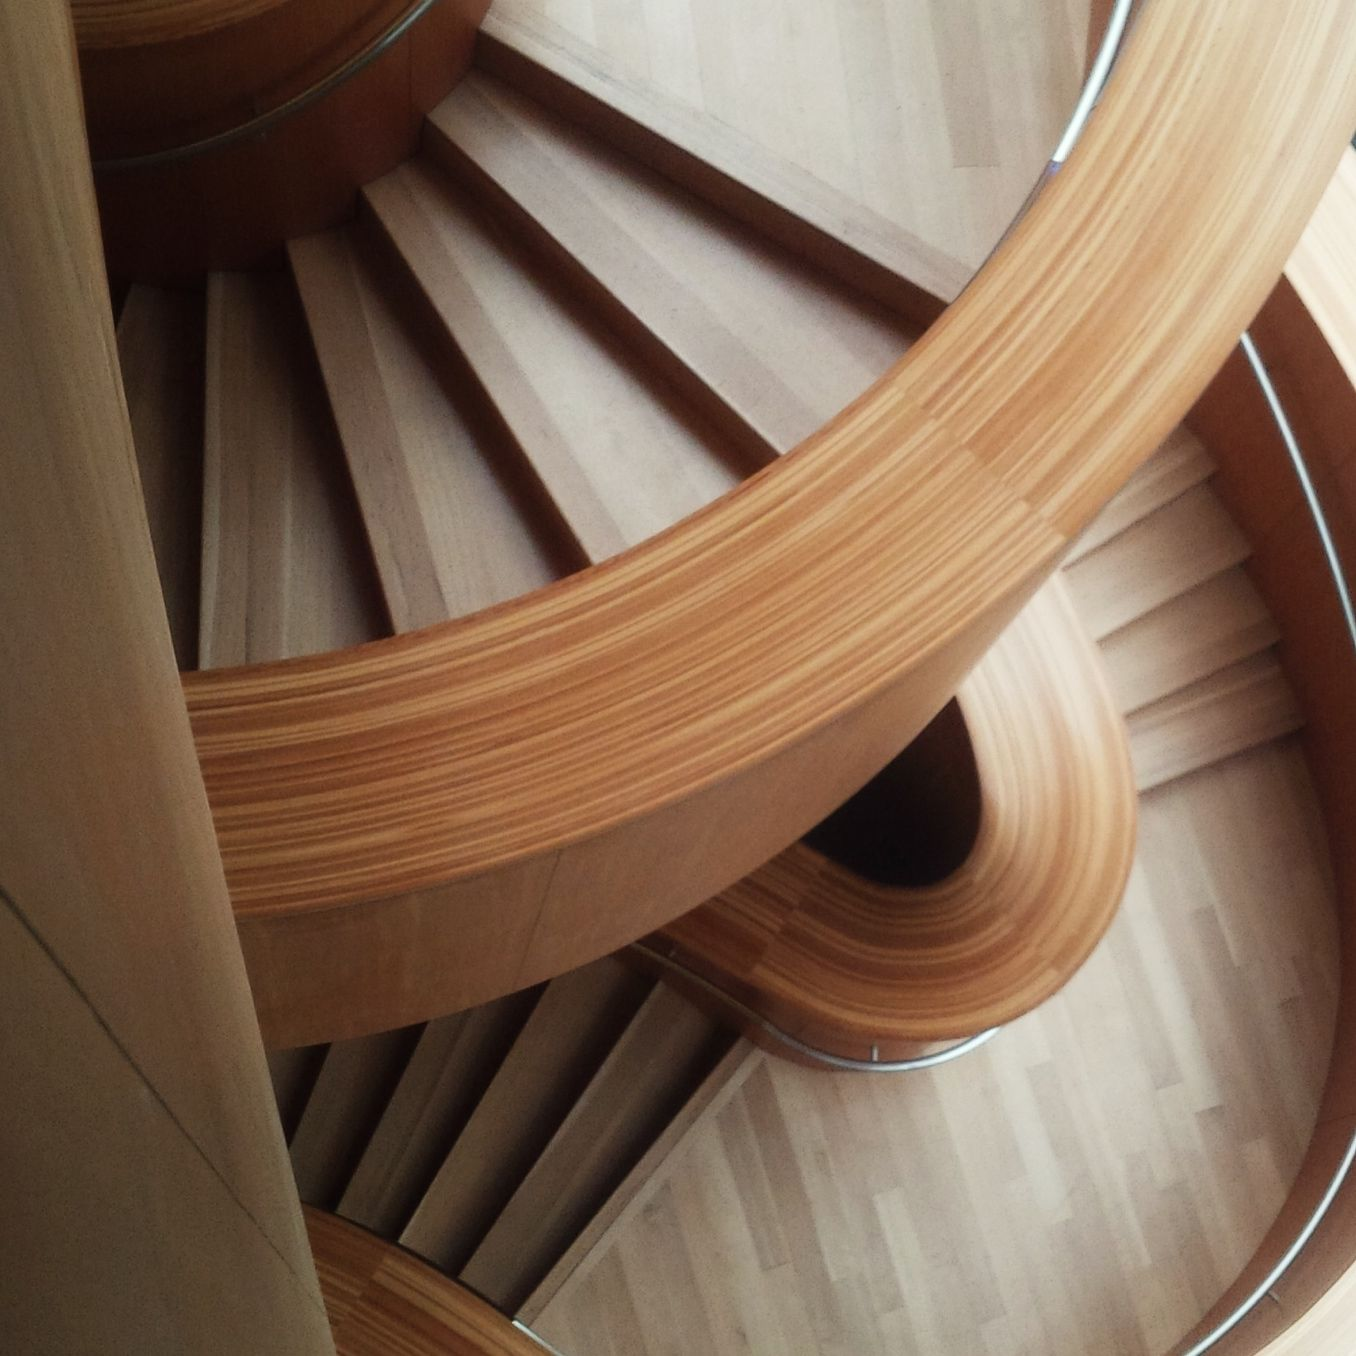 Frank Gehry' Staircase Art Of Ontario